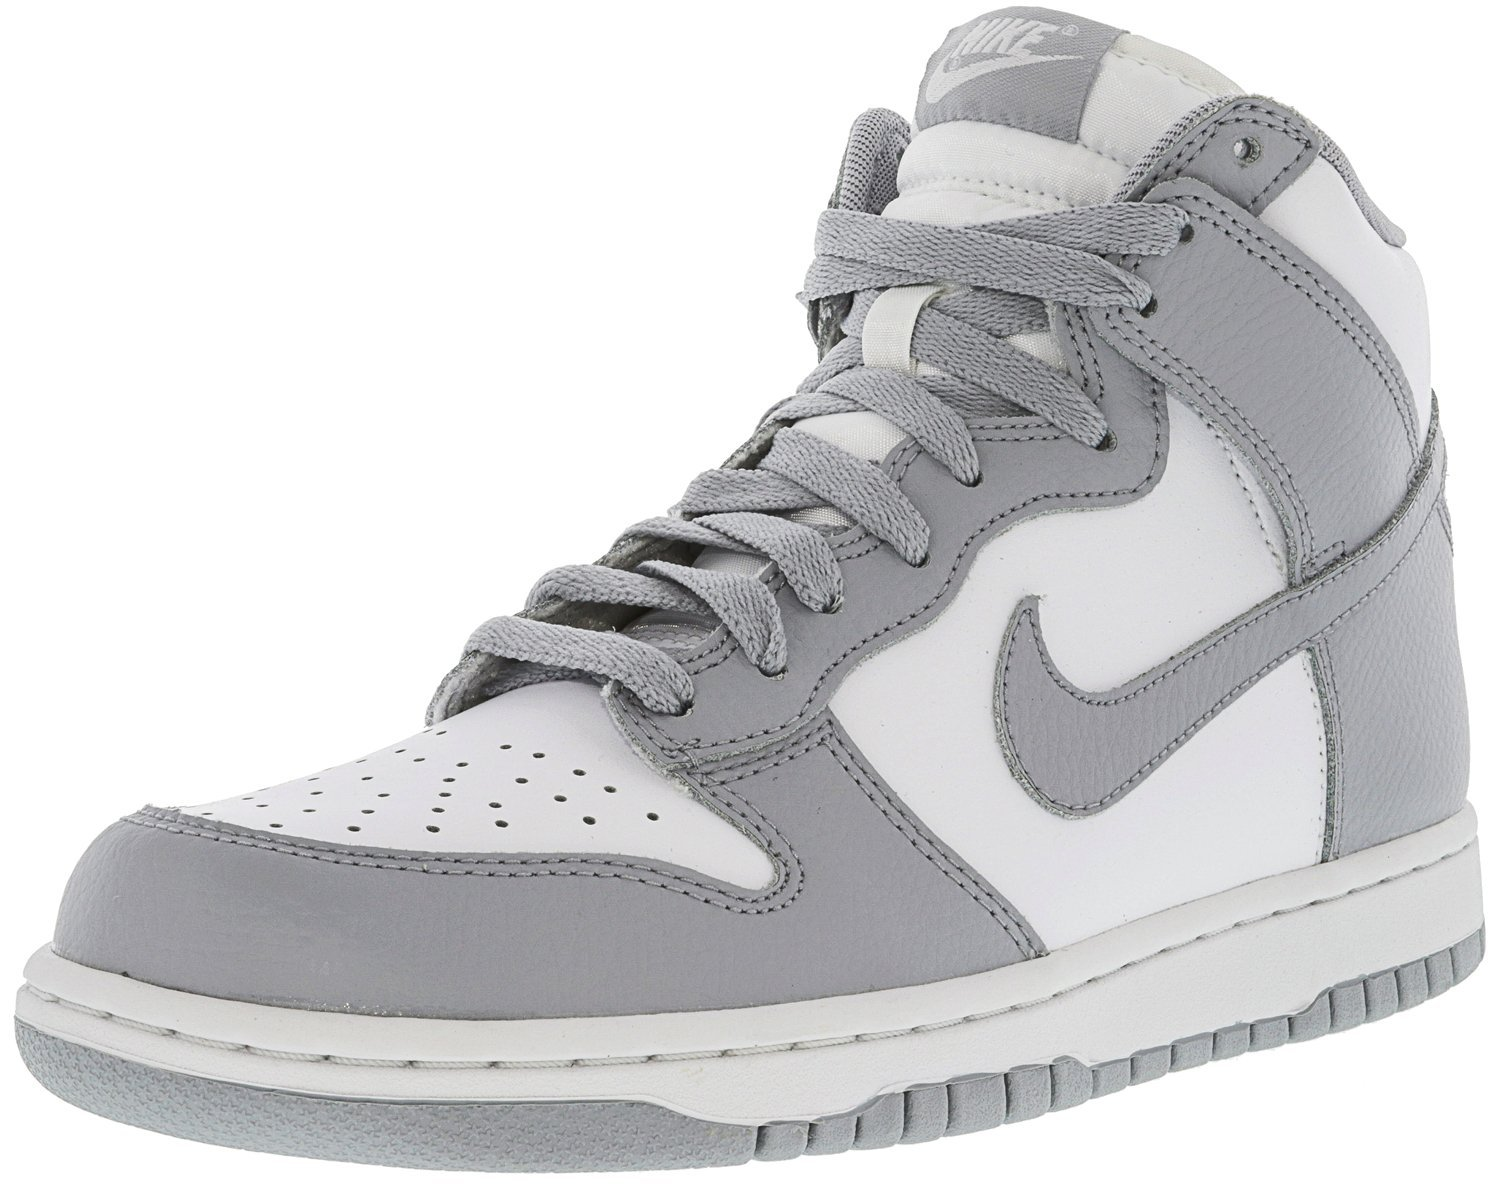 NIKE Women's Dunk Hi White/Wolf Grey High-Top Basketball Shoe - 8.5M